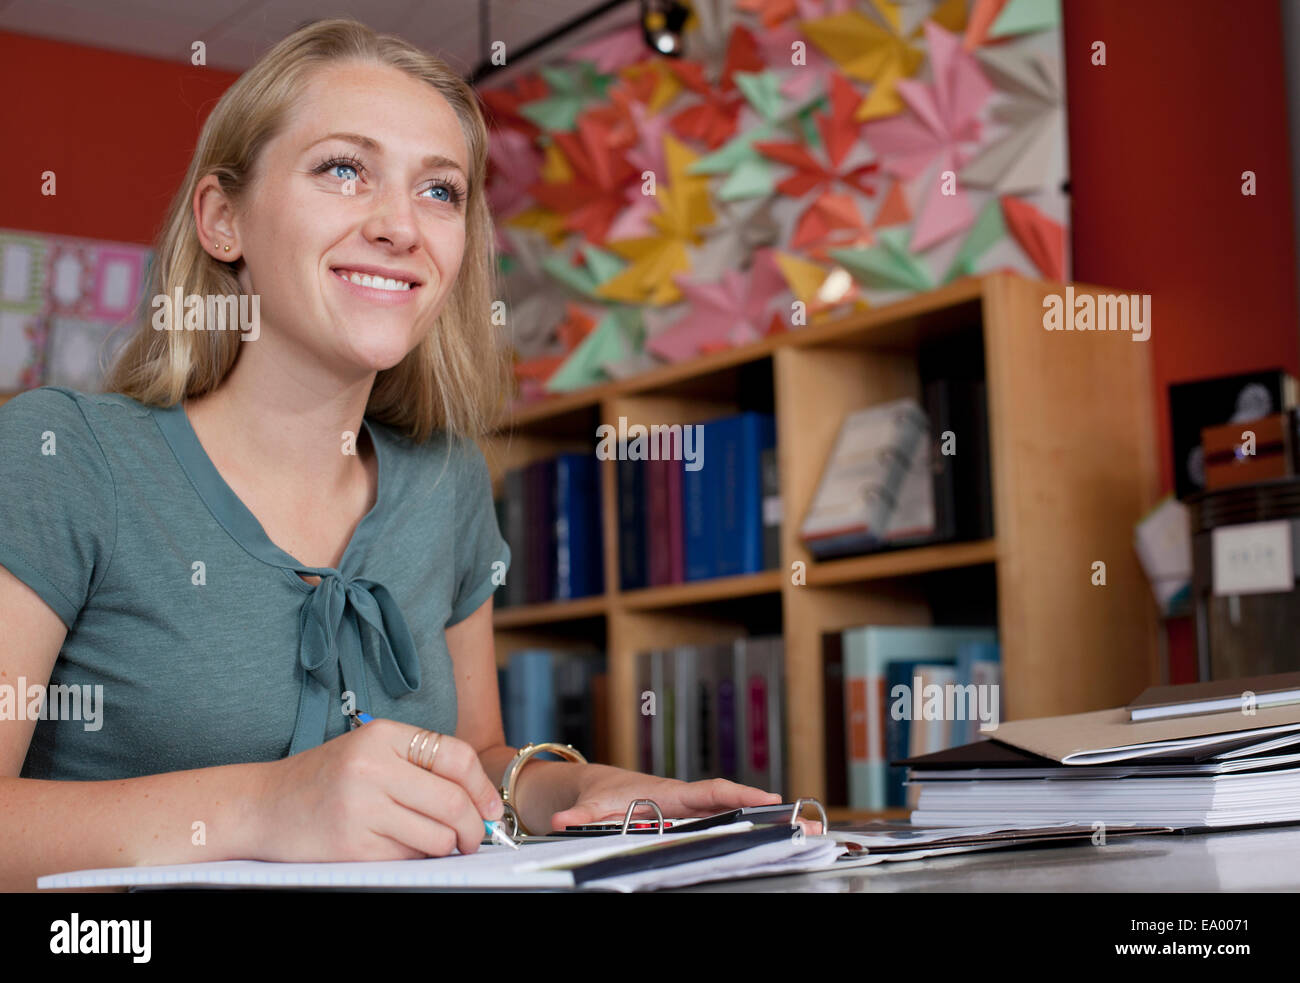 Sales assistant doing paperwork in stationery shop Stock Photo